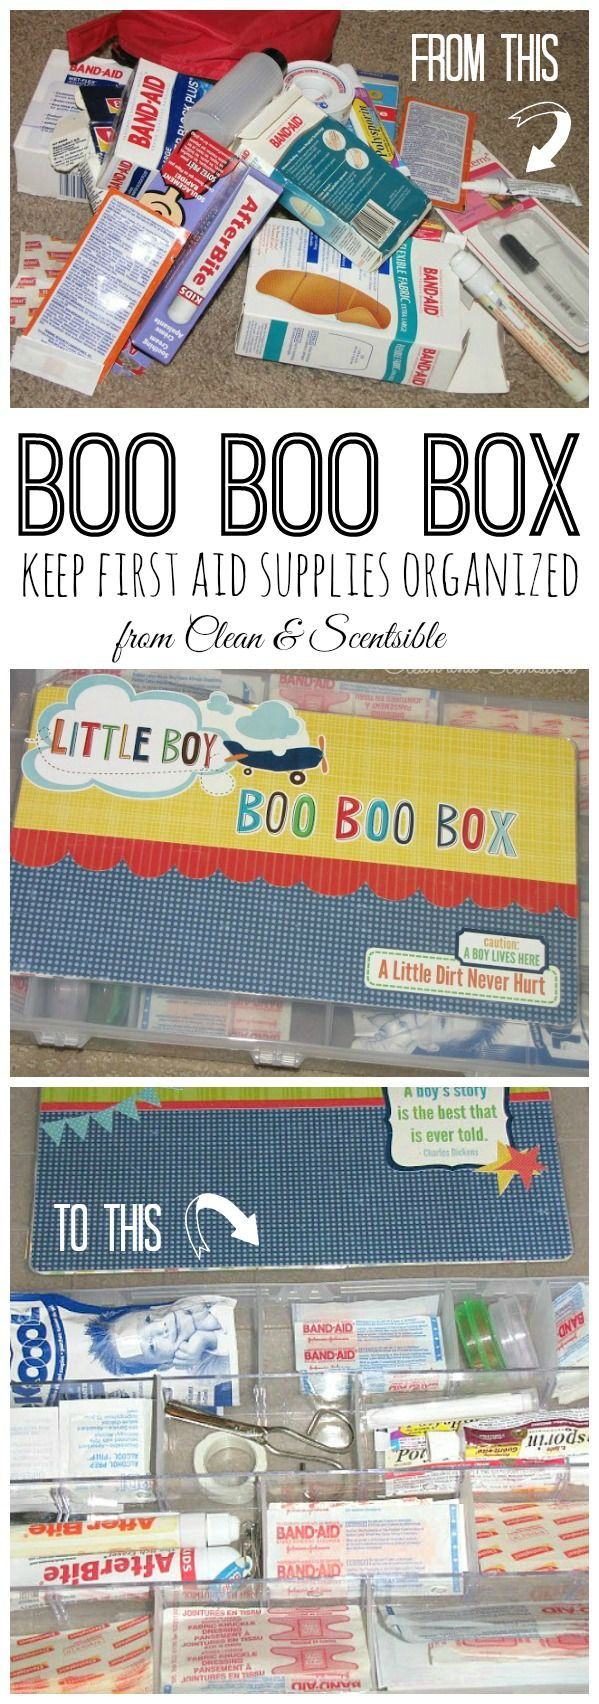 Boo Boo Box - Such a great way to get all of those first aid supplies organized and easily accessible!